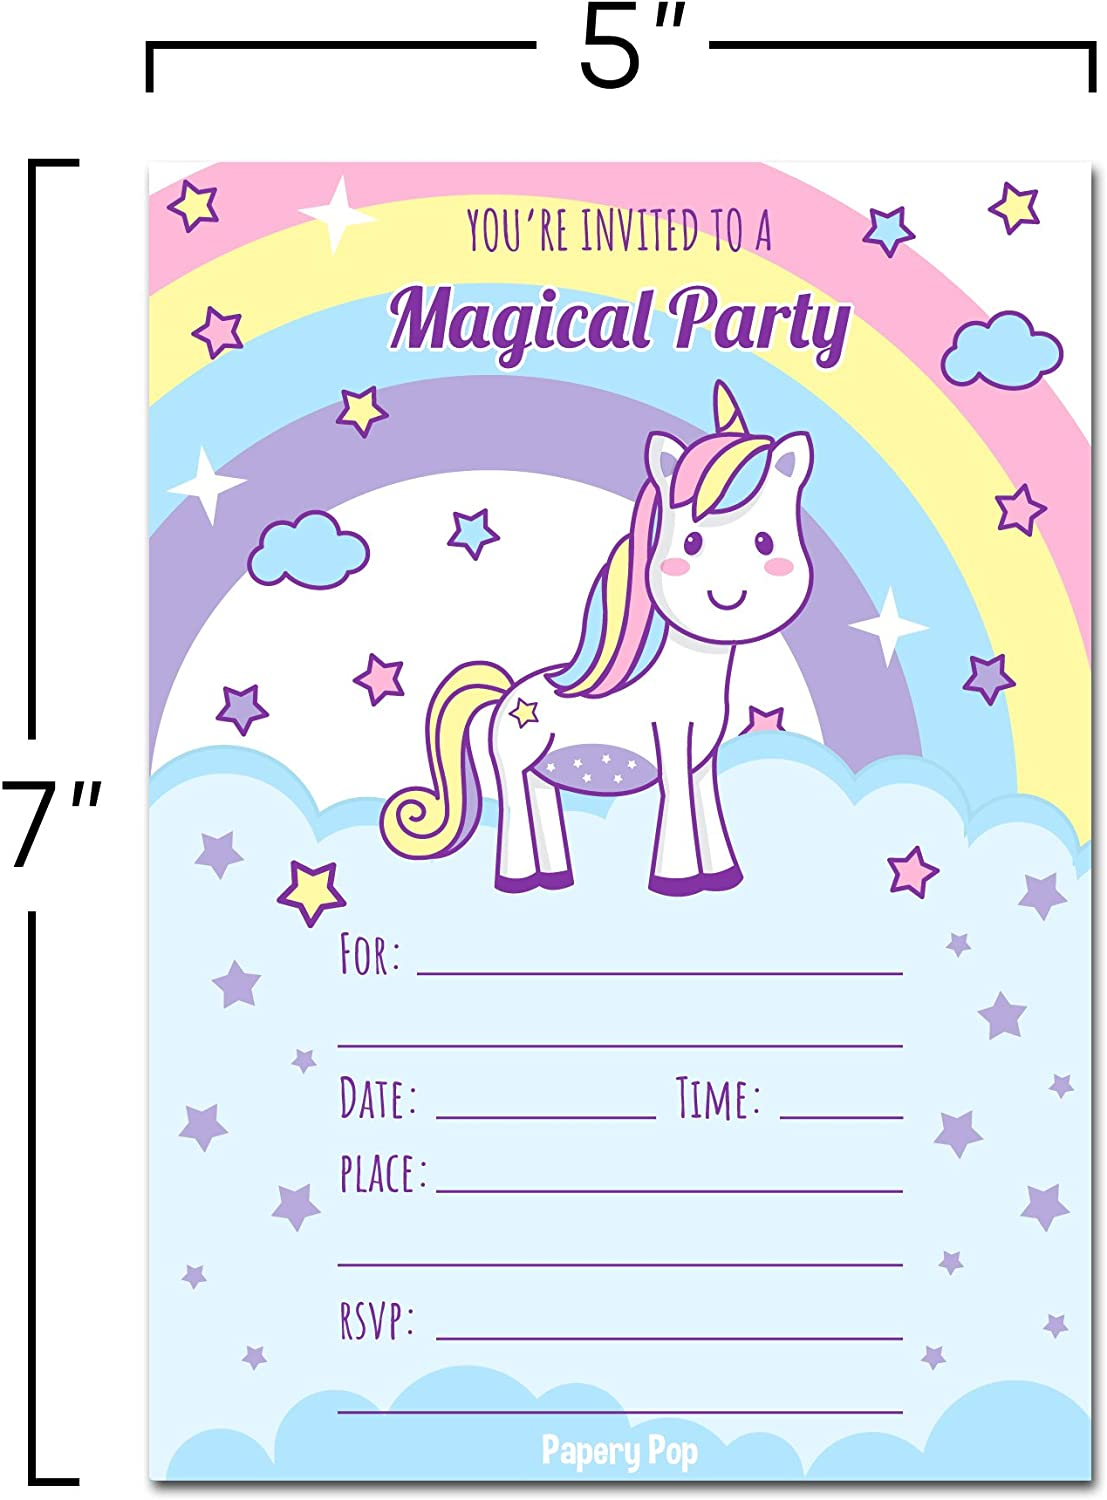 8 Unicorn Birthday Invitations with Envelopes (8 Pack) - Kids Magical  Birthday Party Invitations for Girls